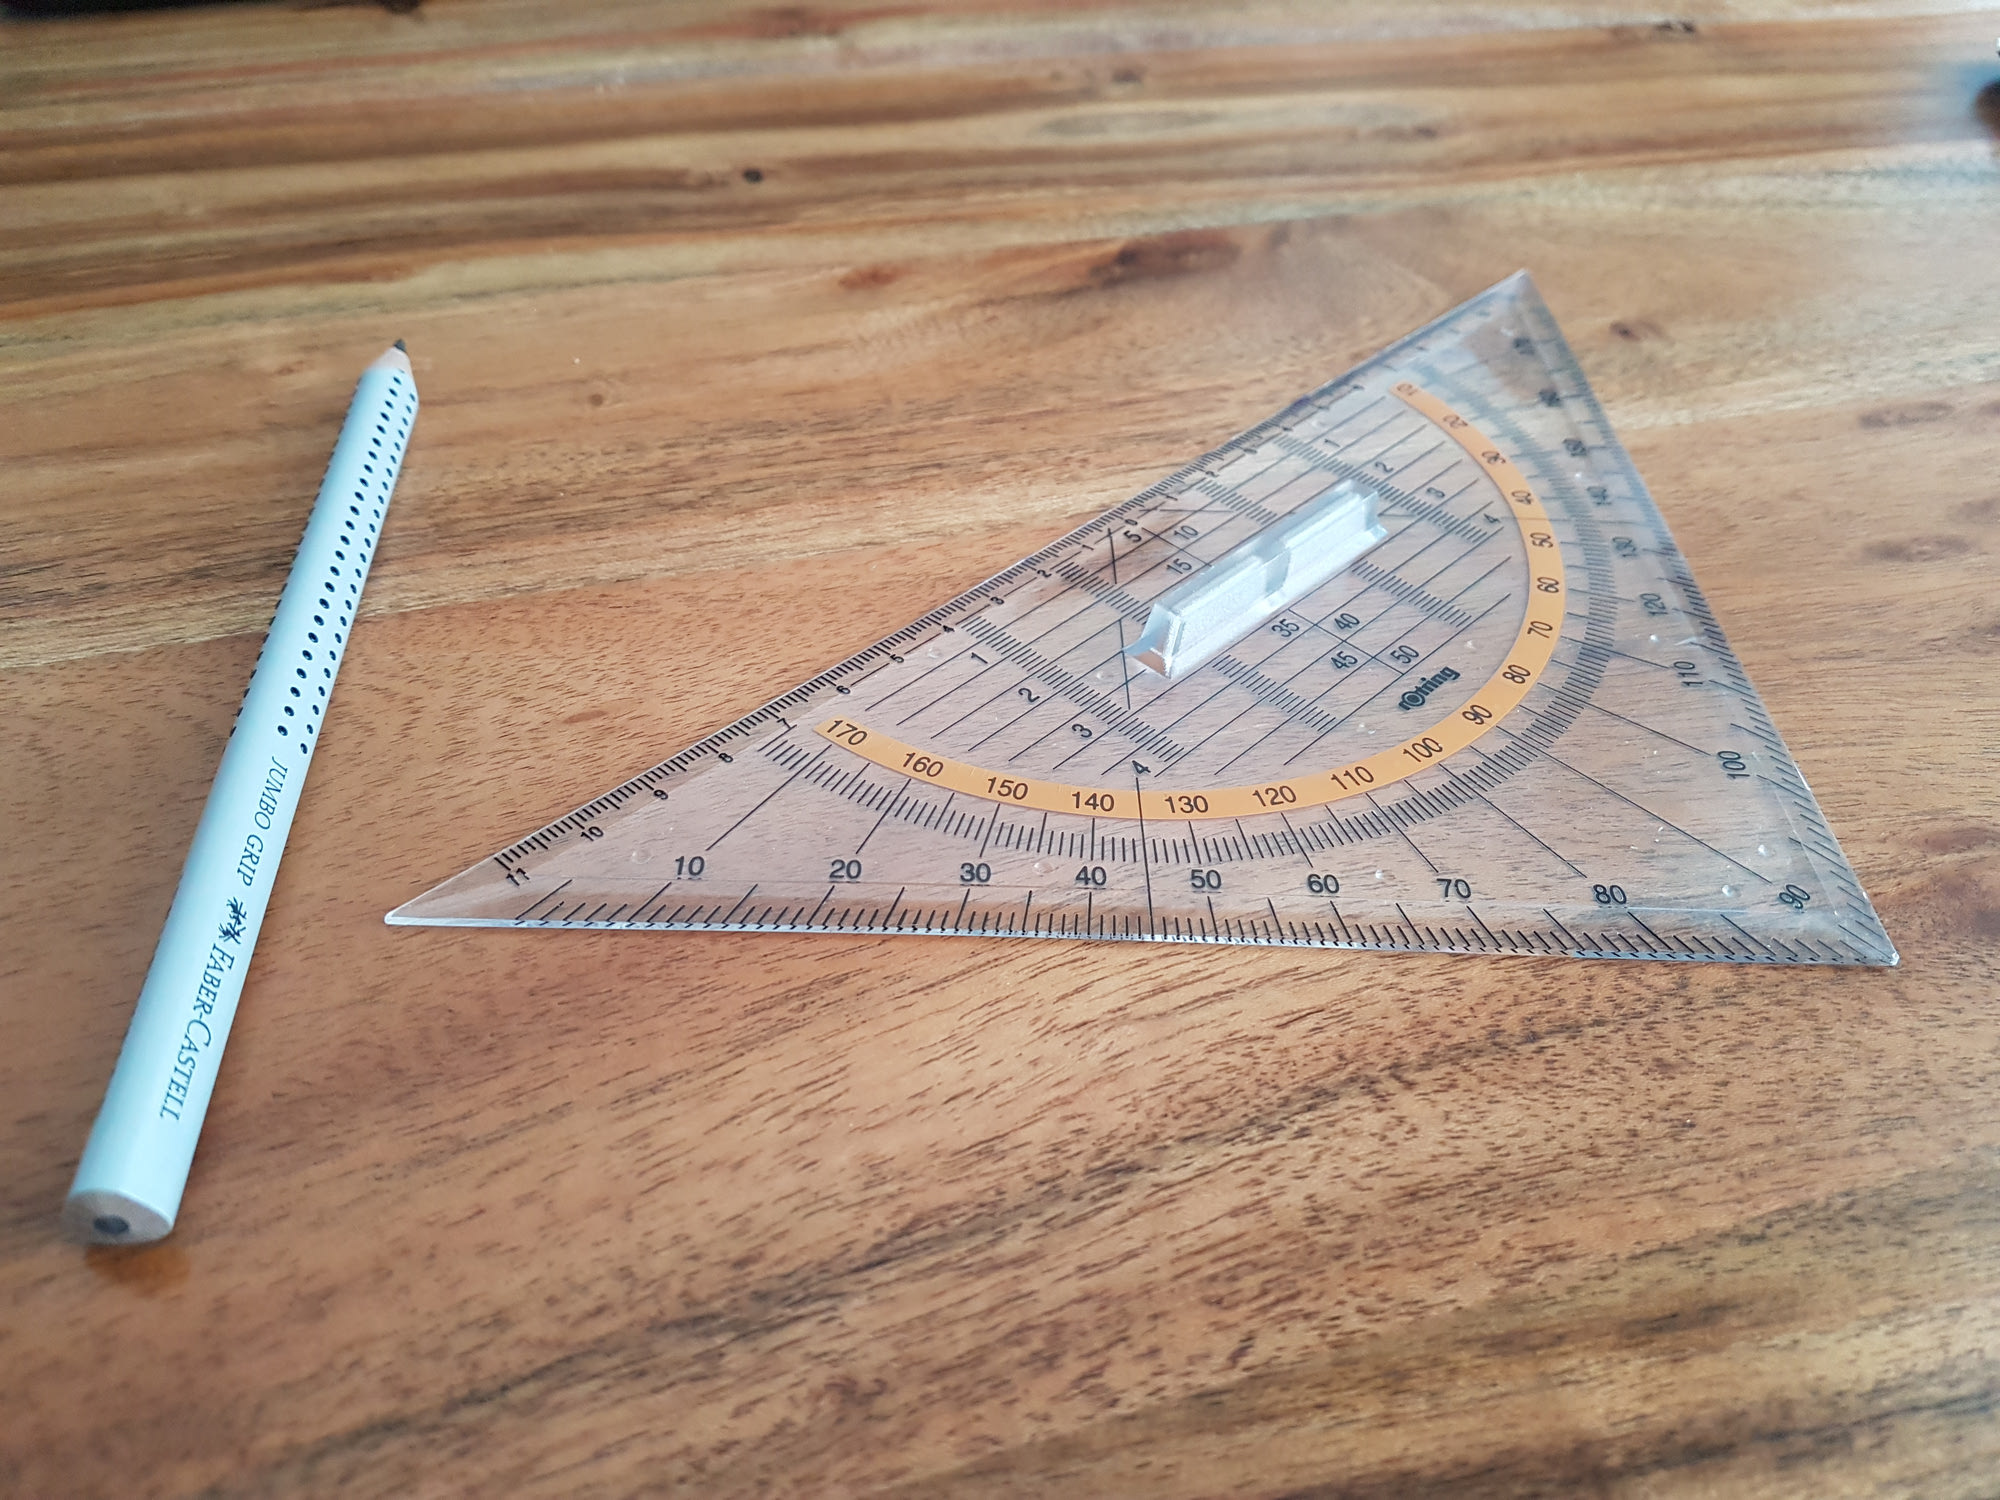 A triangular ruler and gray pencil on a wooden surface.